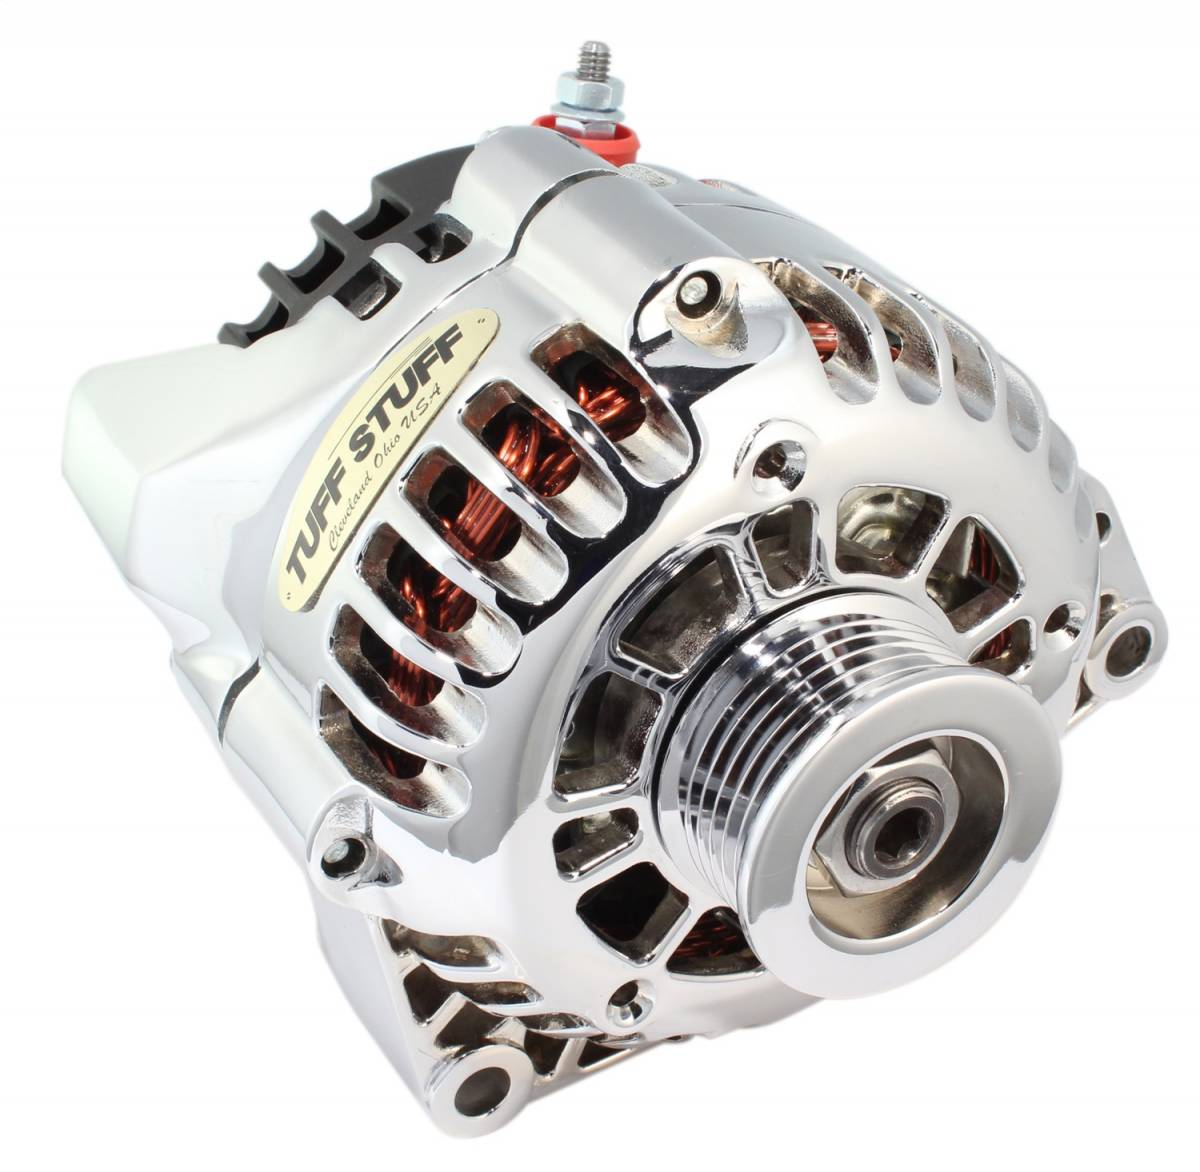 Tuff Stuff Performance - Alternator 125 AMP Chrome Plated 1-Wire Or OEM Hookup Side Post 6 Groove Pulley 8206NA1